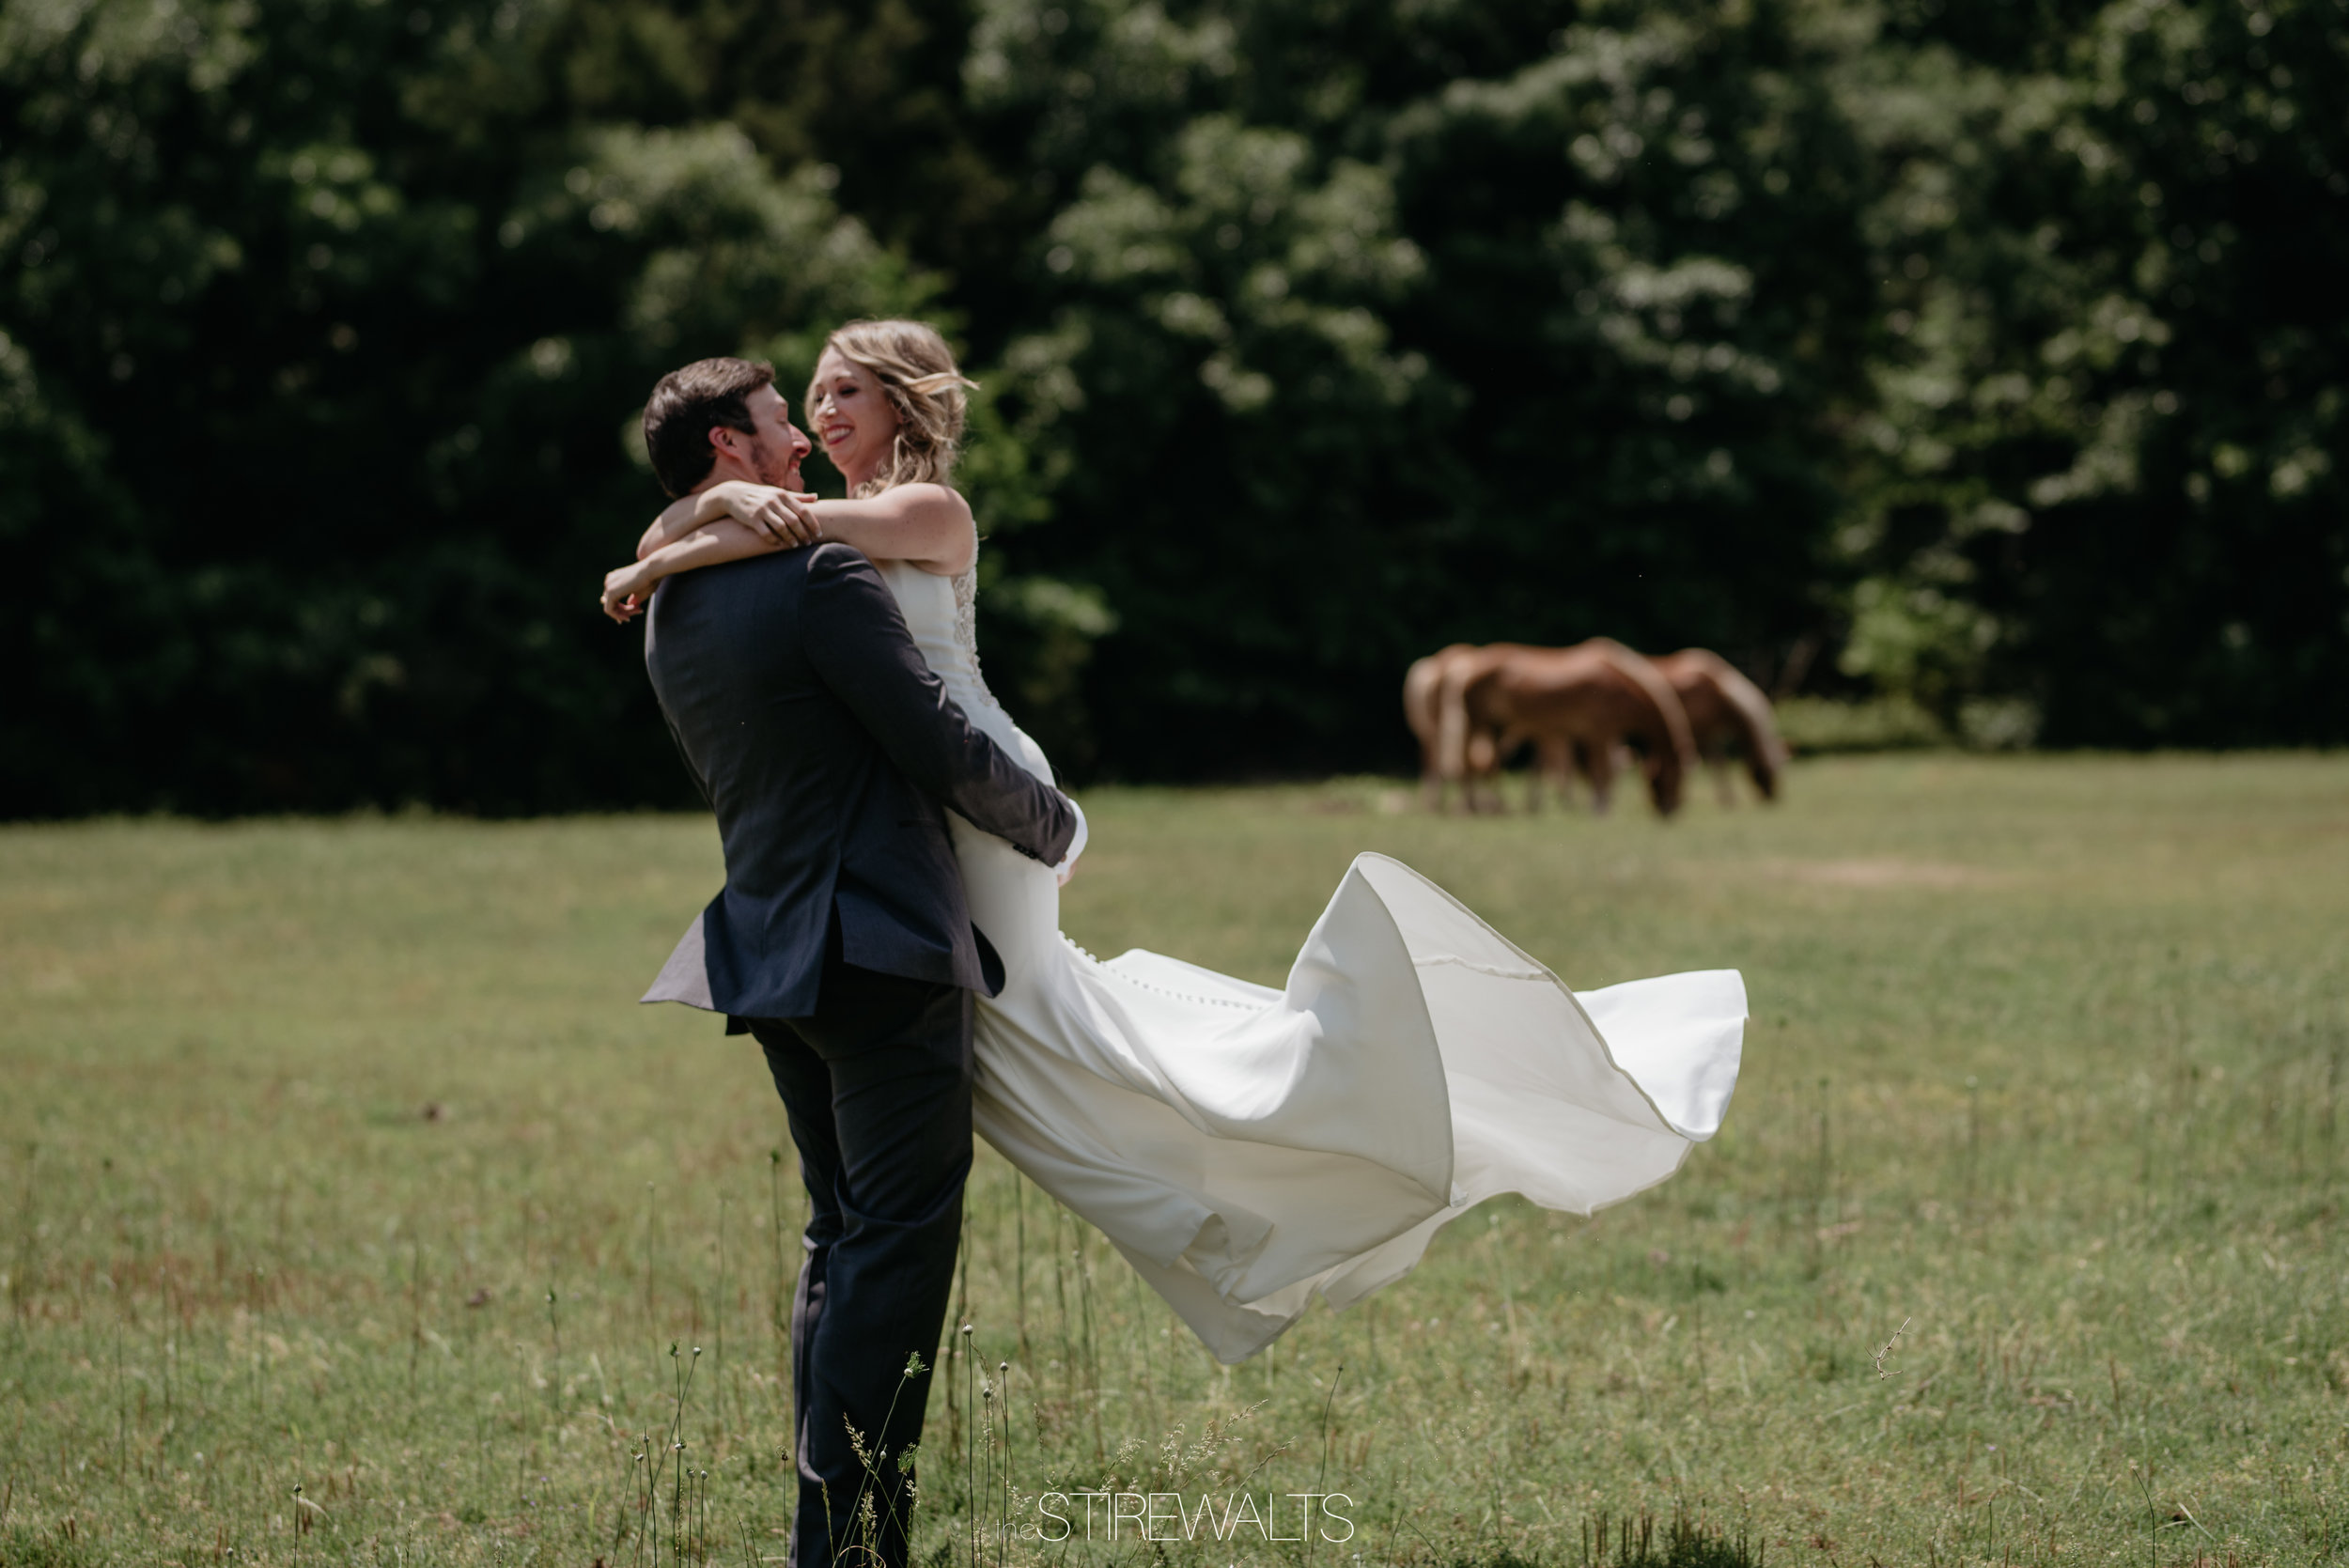 Kayla.Jay.Wedding.Blog.2018.©TheStirewalts-53.jpg